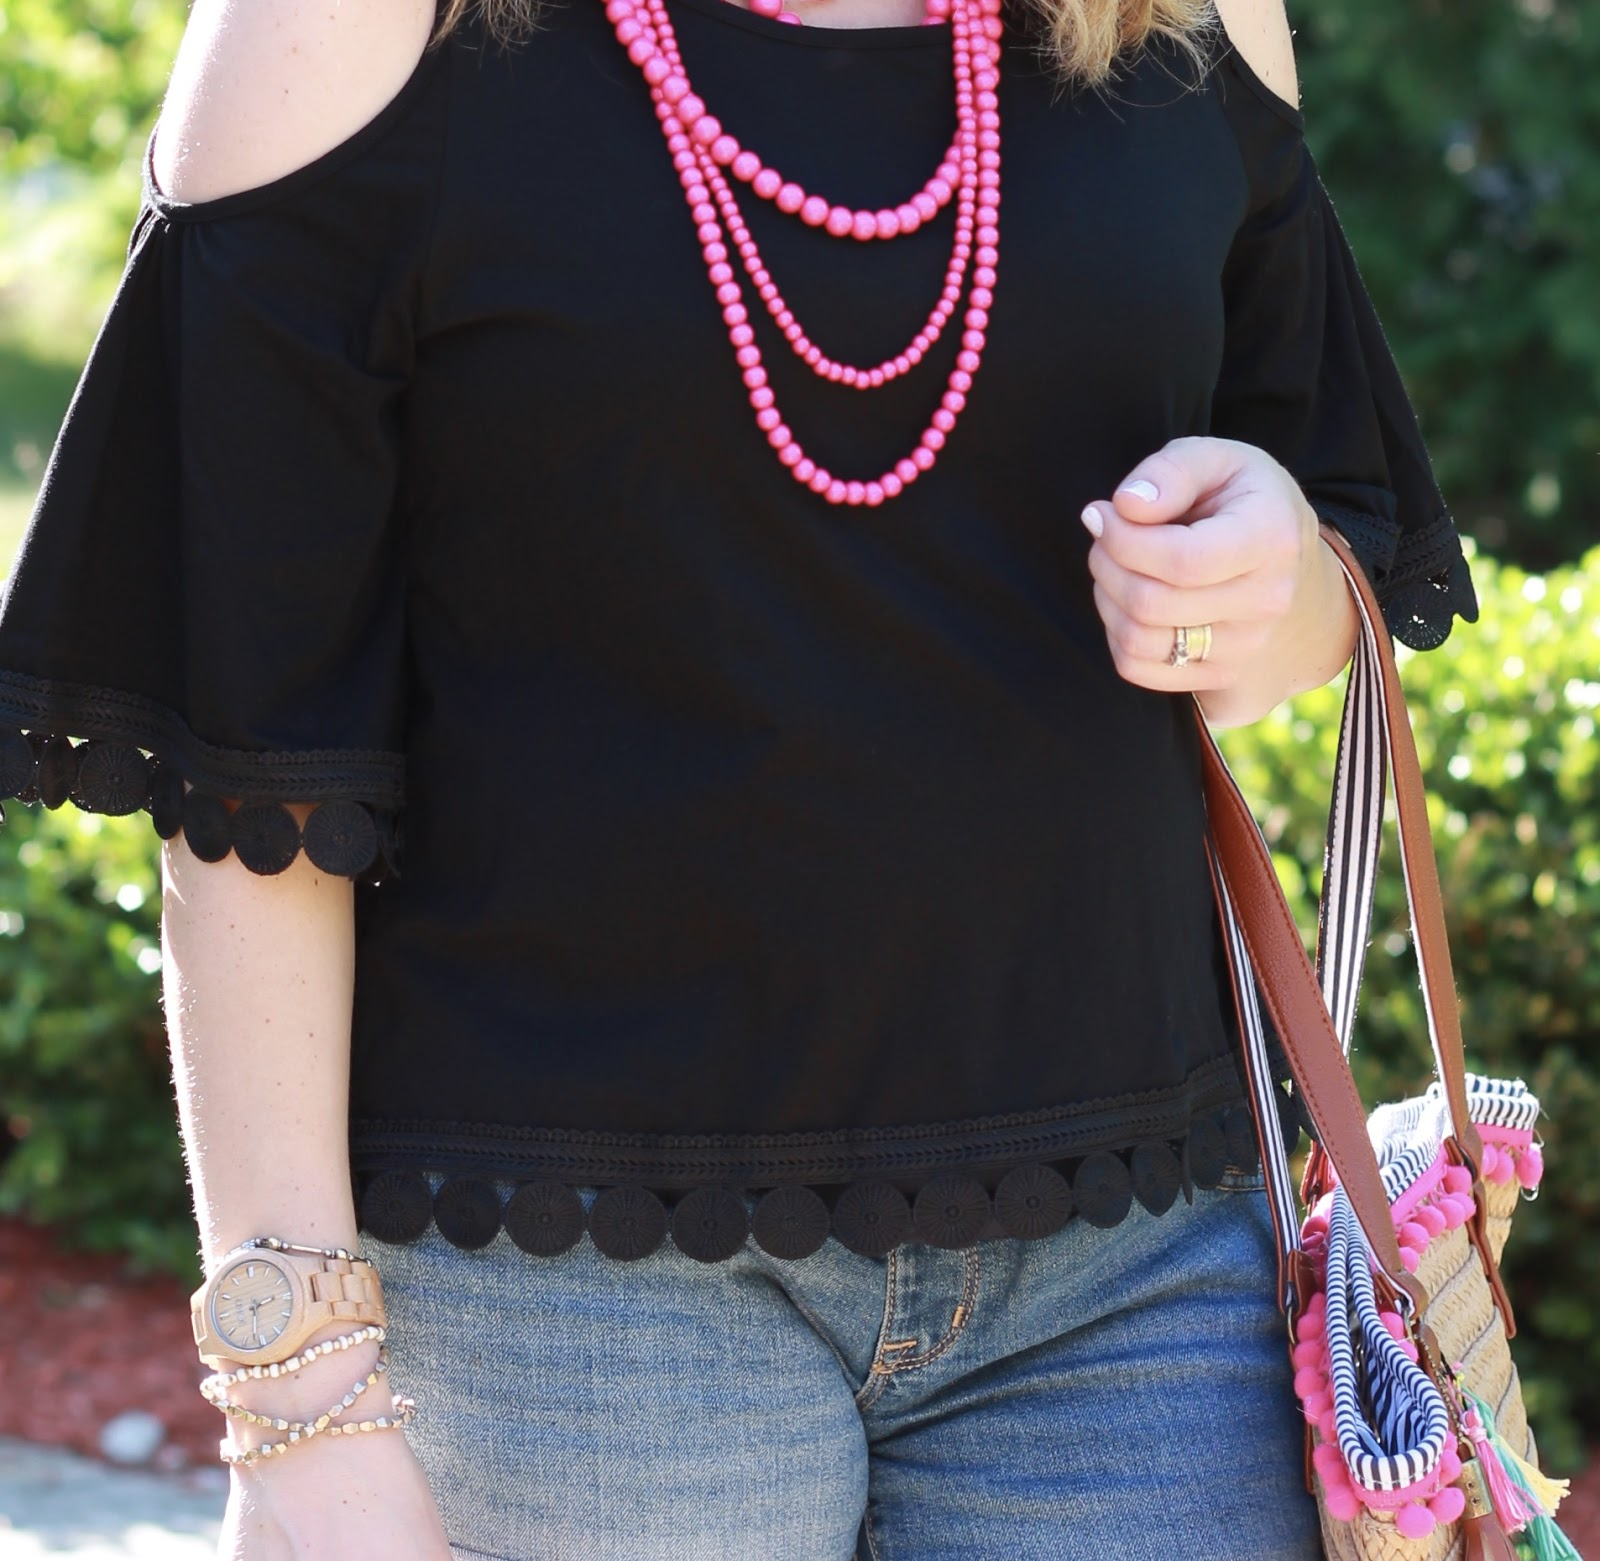 black cold shoulder top, jean shorts, tassel straw tote, steve madden wedge sandals, pink statement necklace, second trimester, summer maternity outfit